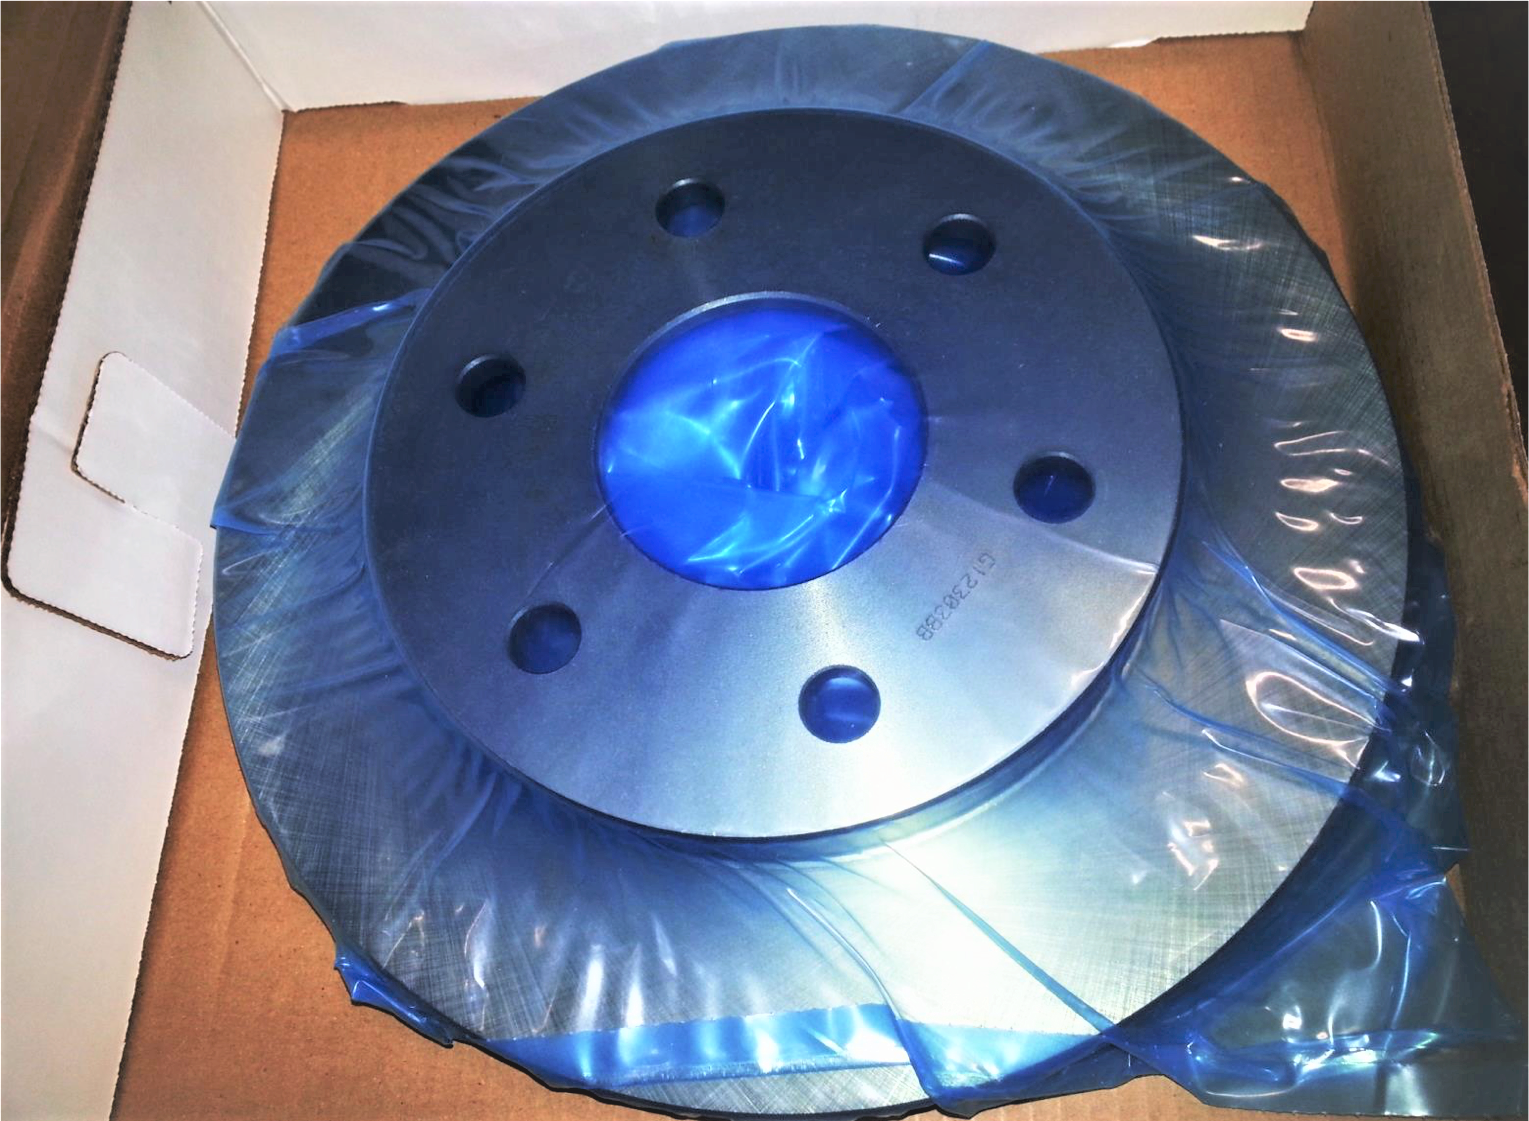 Car part in box wrapped in blue VCI film